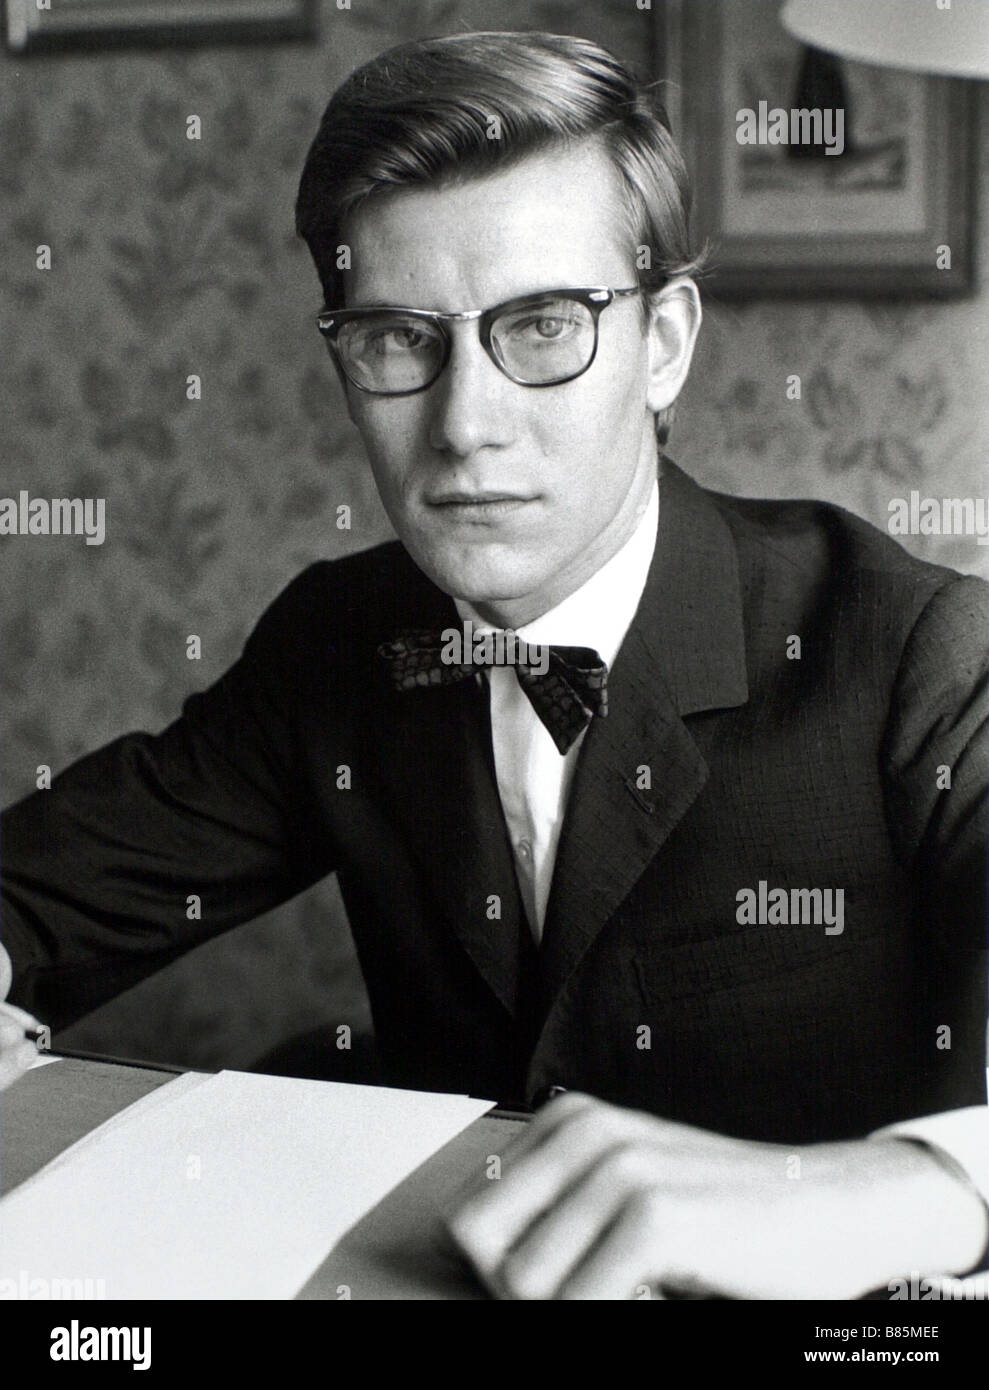 7de891a81925d Yves Saint Laurent (July 1960 Stock Photo  22253462 - Alamy